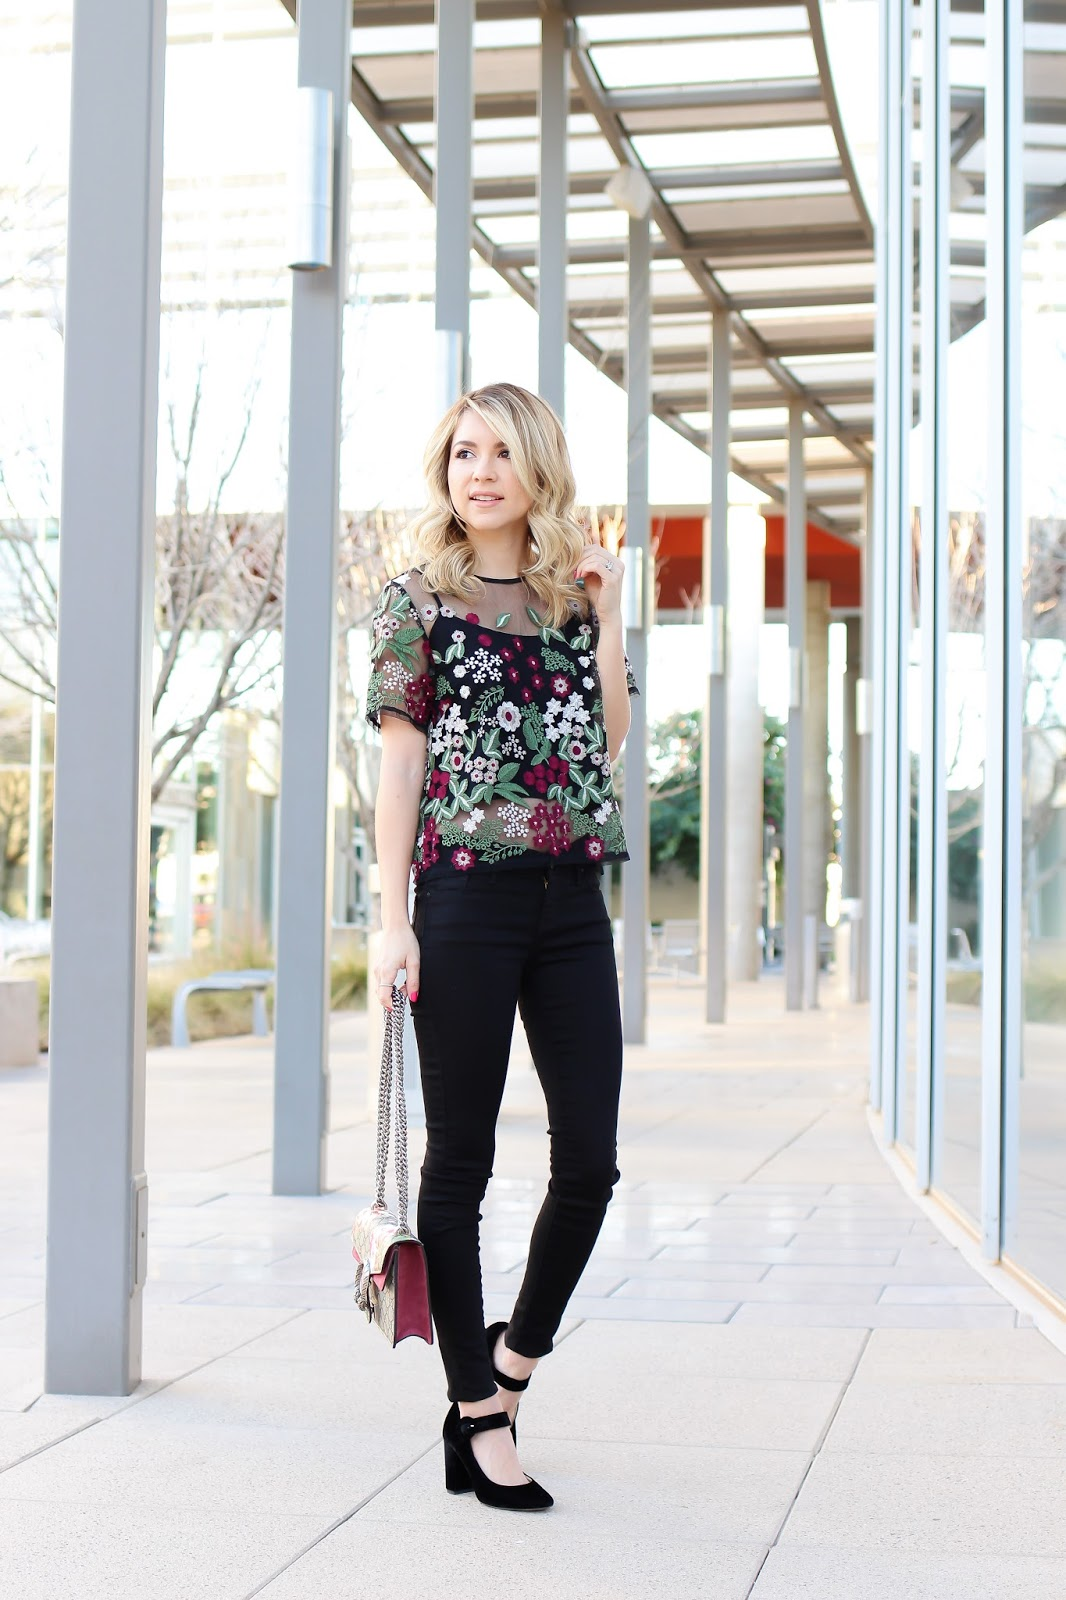 style - simply sutter - lucy paris - dillards - sheer top - spring fashion